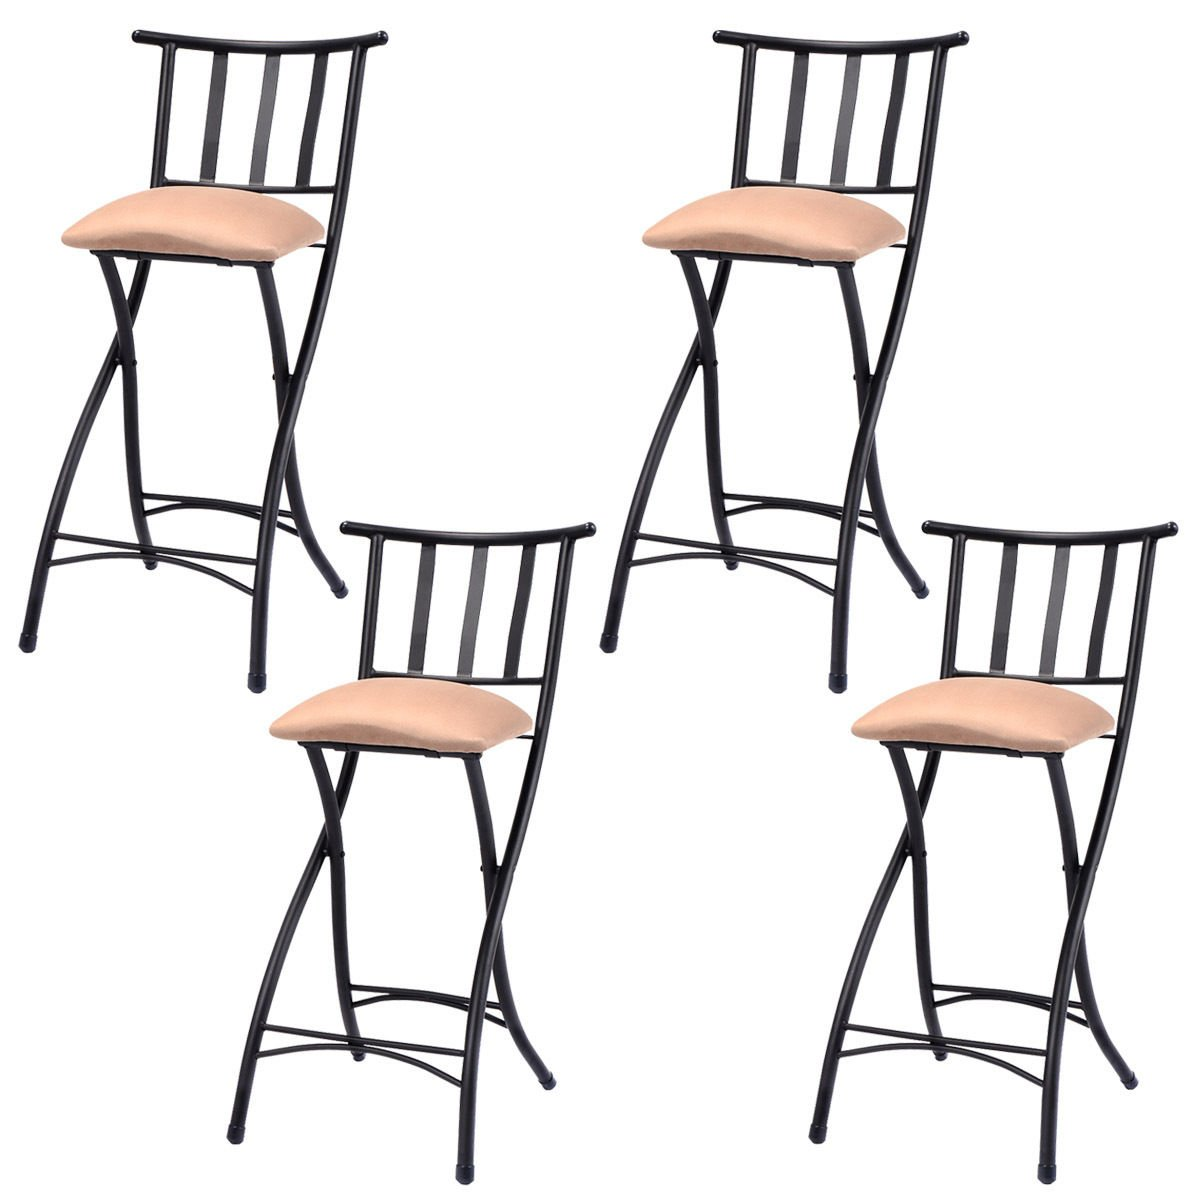 image stool padded ideas folding chair at walmartfolding amazon plans stupendous kitchen oypla black height bar stools high counter breakfast co